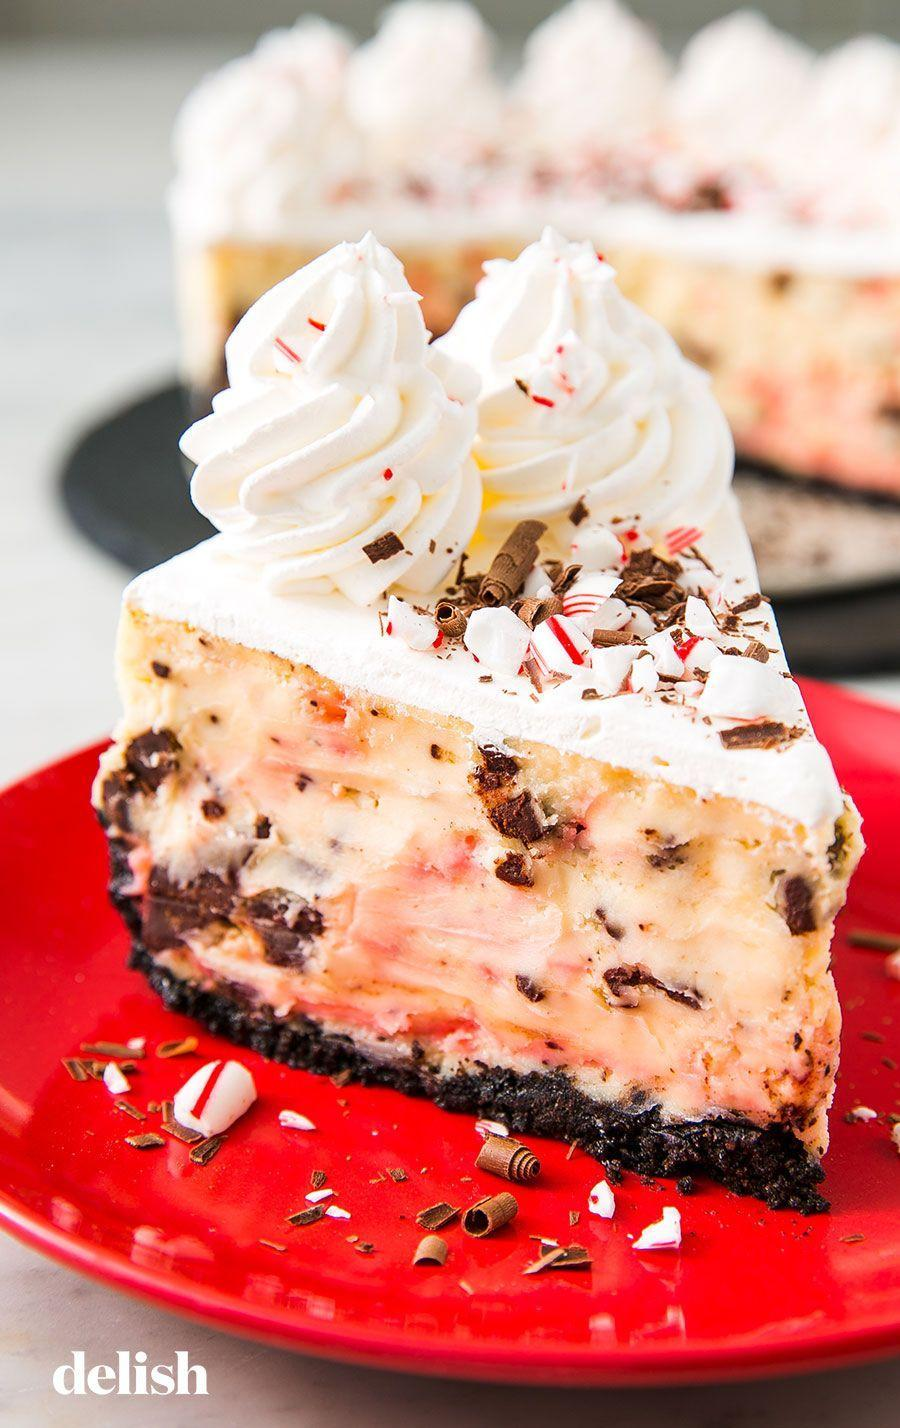 """<p>Winter is the BEST season for peppermint. </p><p>Get the recipe from <a href=""""https://www.delish.com/holiday-recipes/christmas/a25441818/peppermint-bark-cheesecake-recipe/"""" rel=""""nofollow noopener"""" target=""""_blank"""" data-ylk=""""slk:Delish"""" class=""""link rapid-noclick-resp"""">Delish</a>. </p>"""